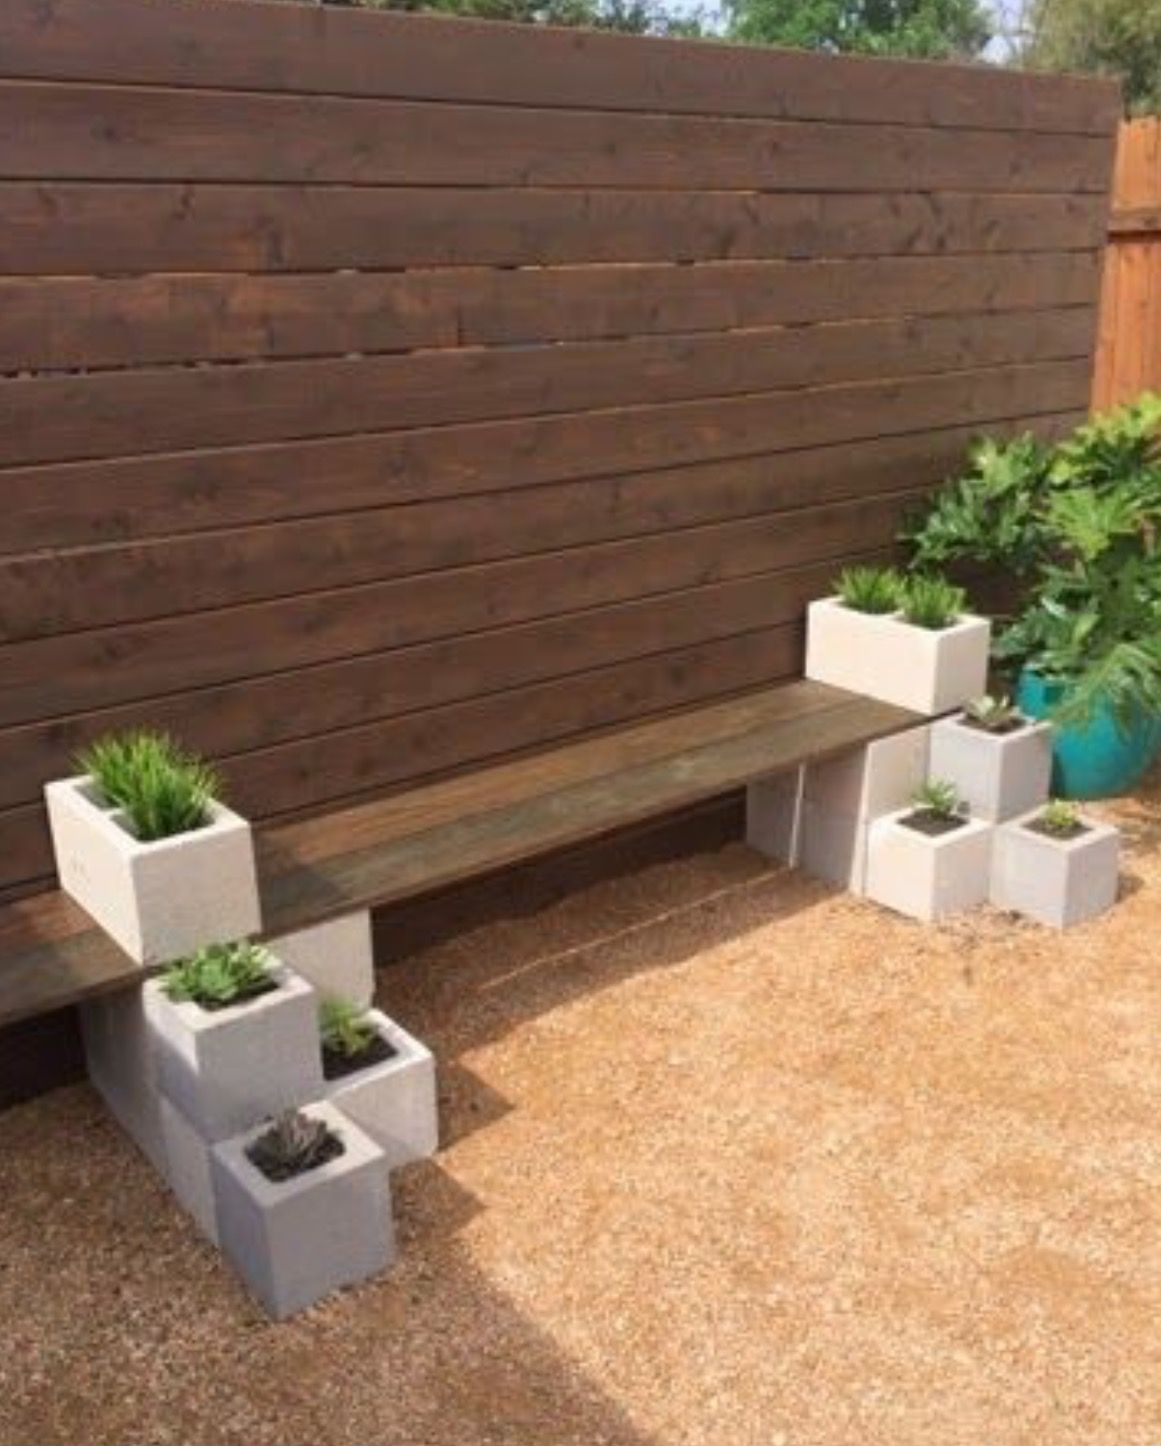 Design Cinder Block Bench easy bench with cinder blocks jardin pinterest blocks